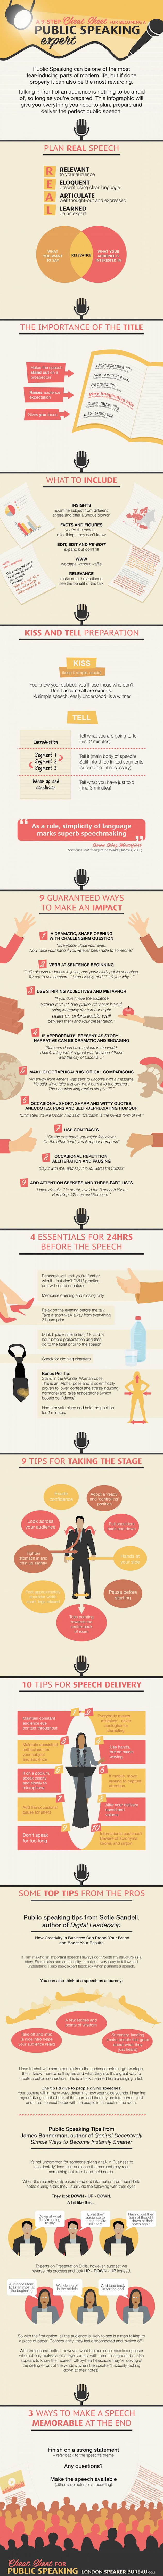 9 Steps to Becoming a Better Public Speaker [Infographic], via @HubSpot